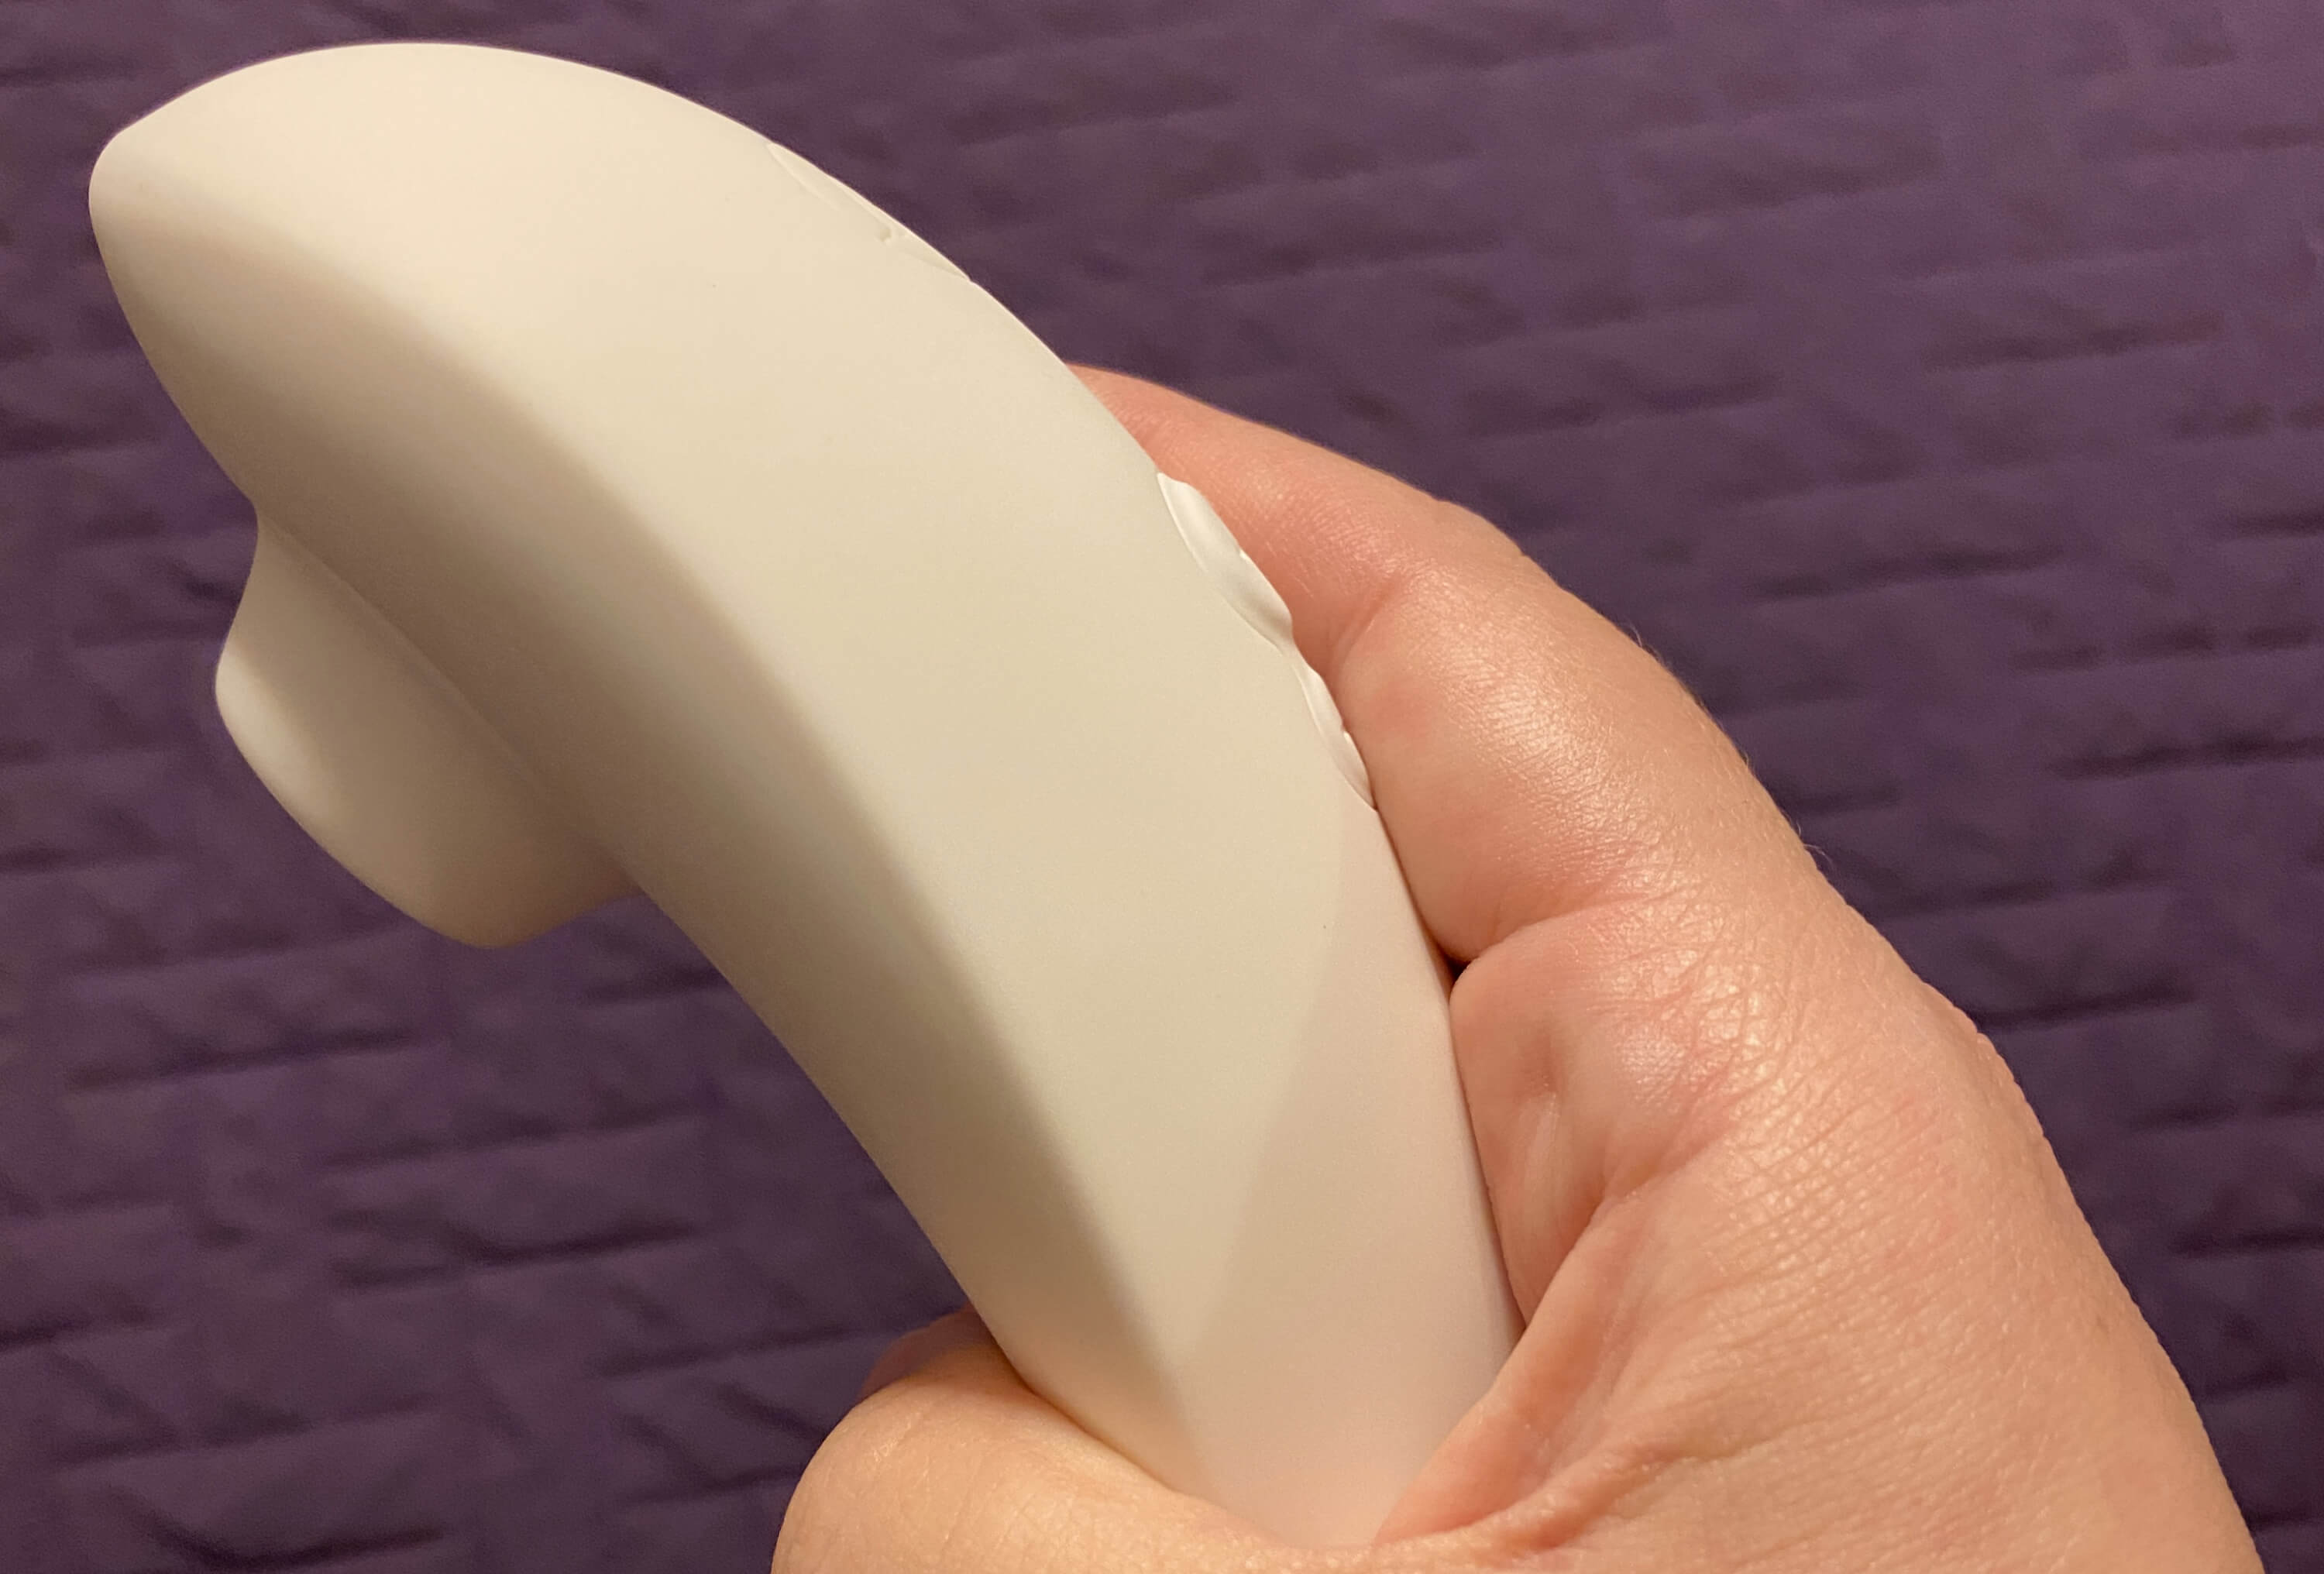 Kayla holding Womanizer Premium in side or profile view